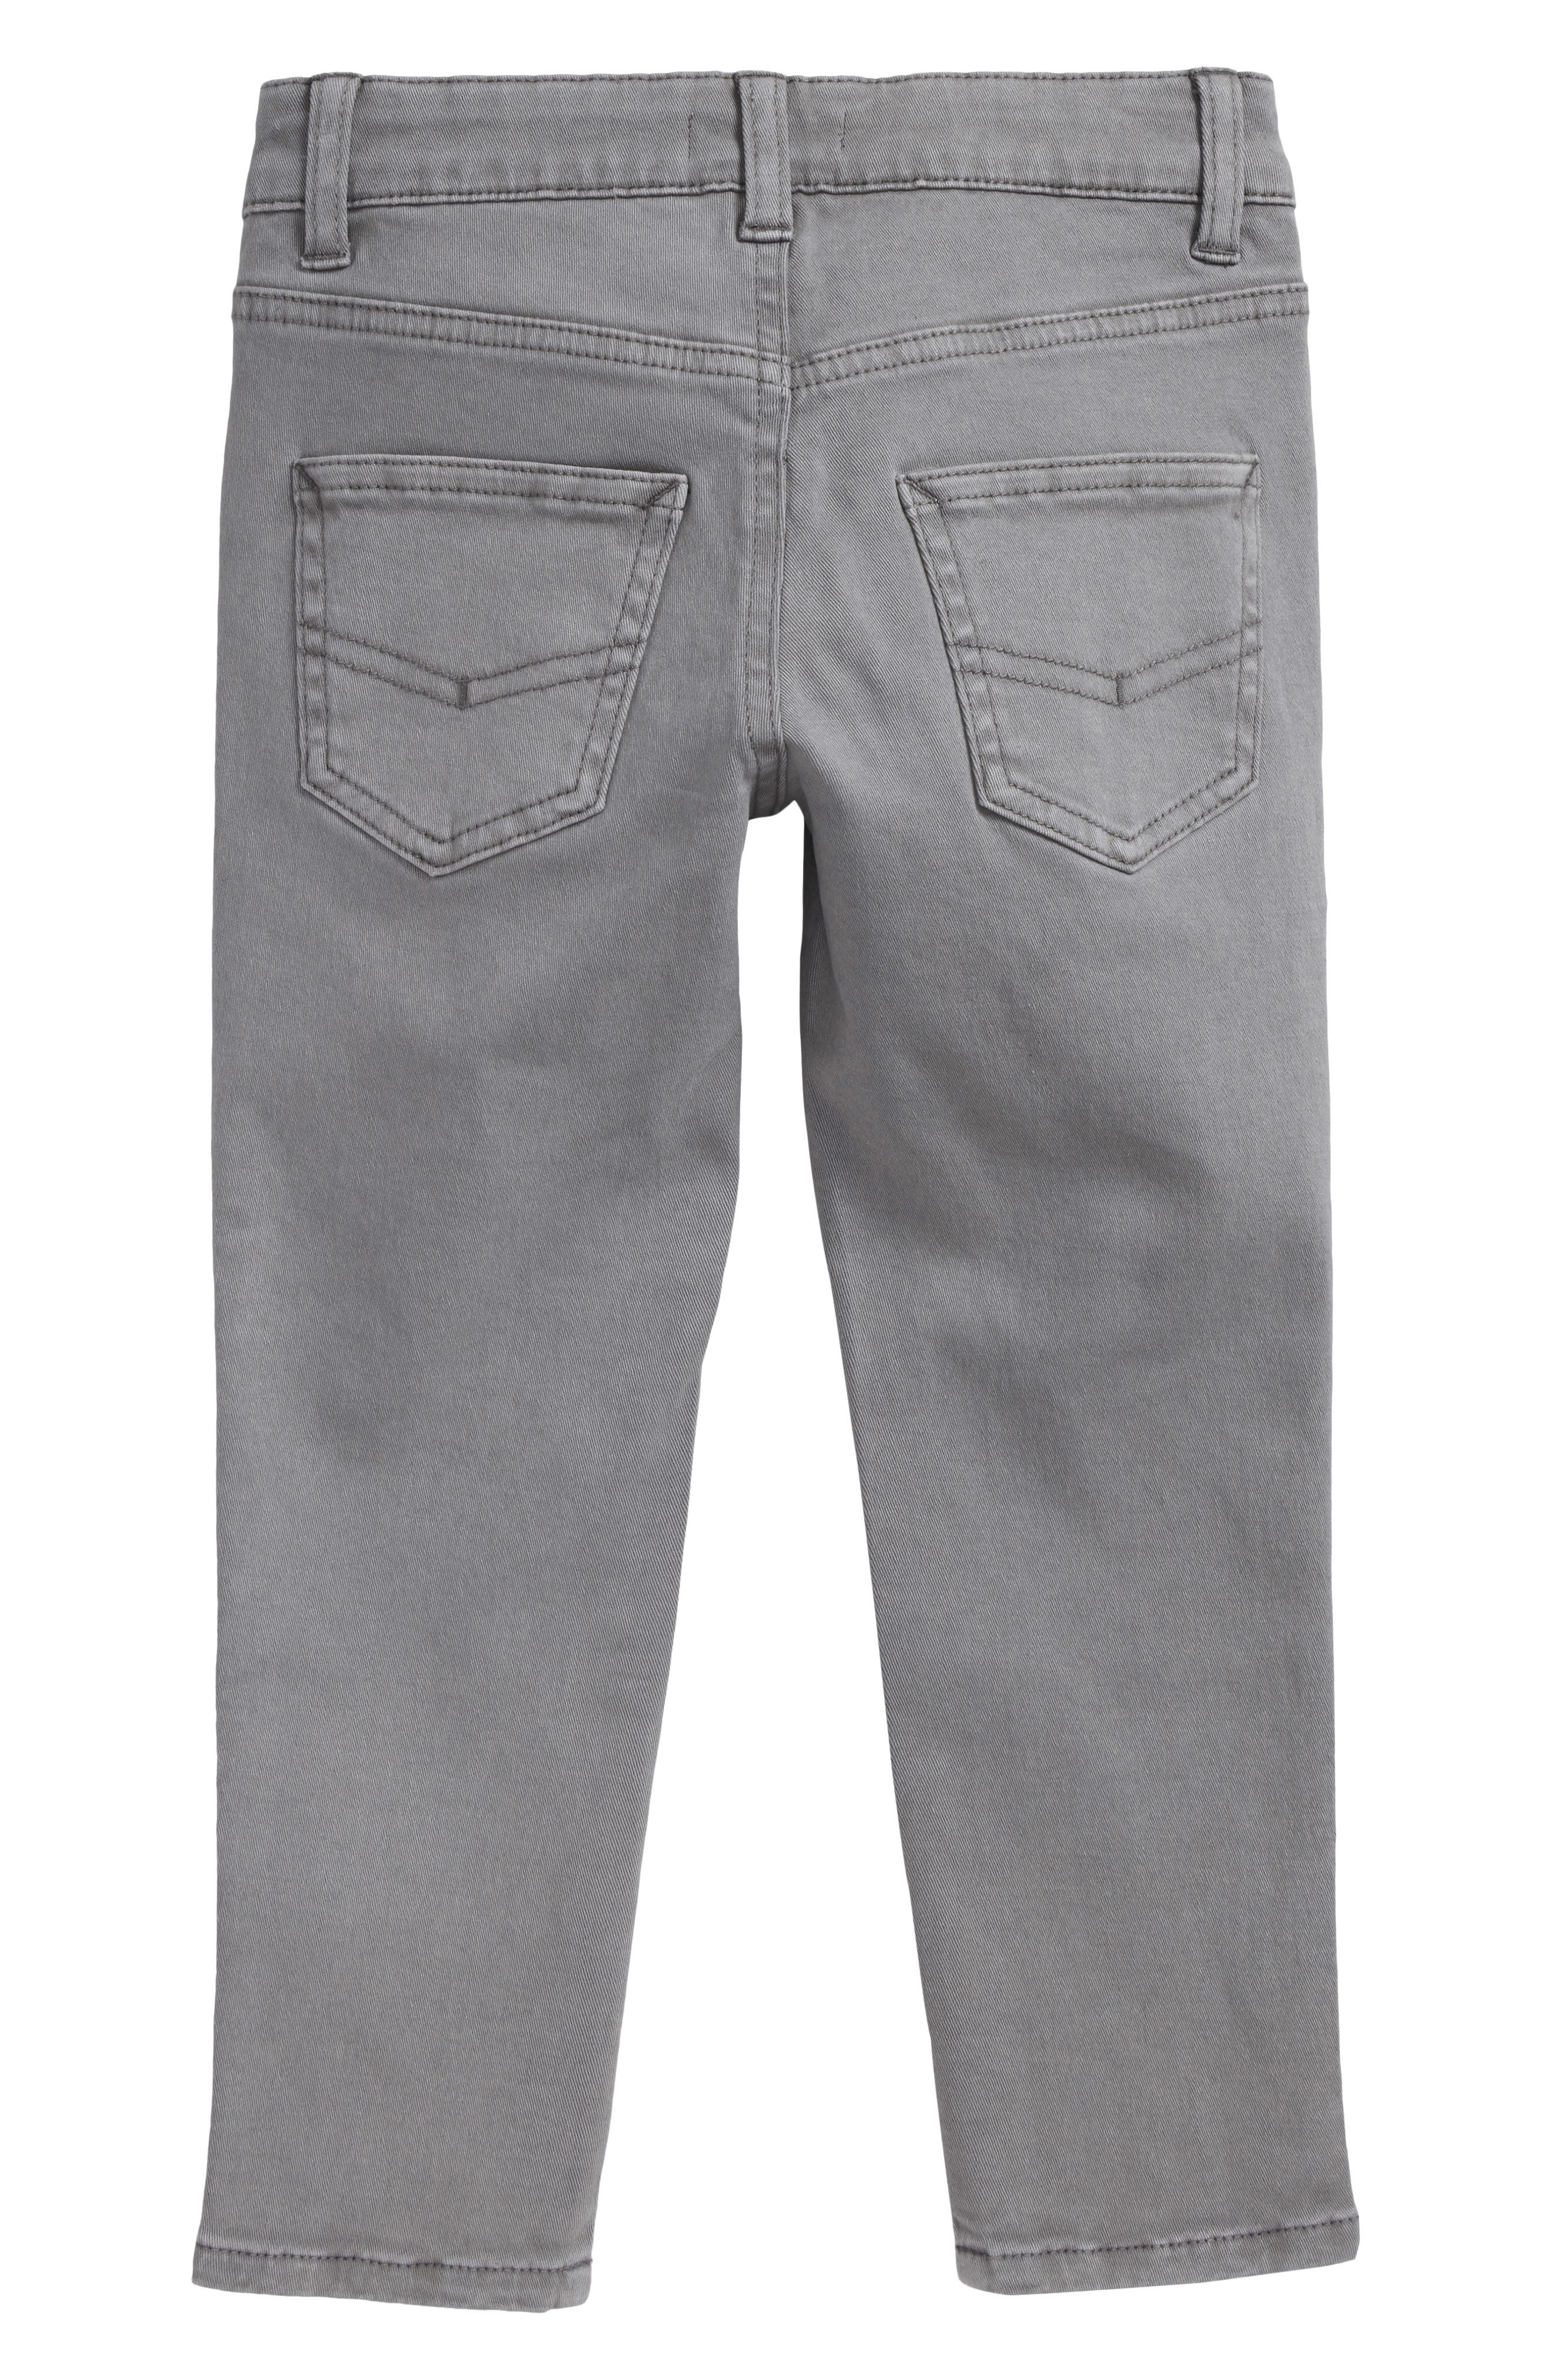 Stretch Chino Pants,                             Alternate thumbnail 2, color,                             GREY FROST